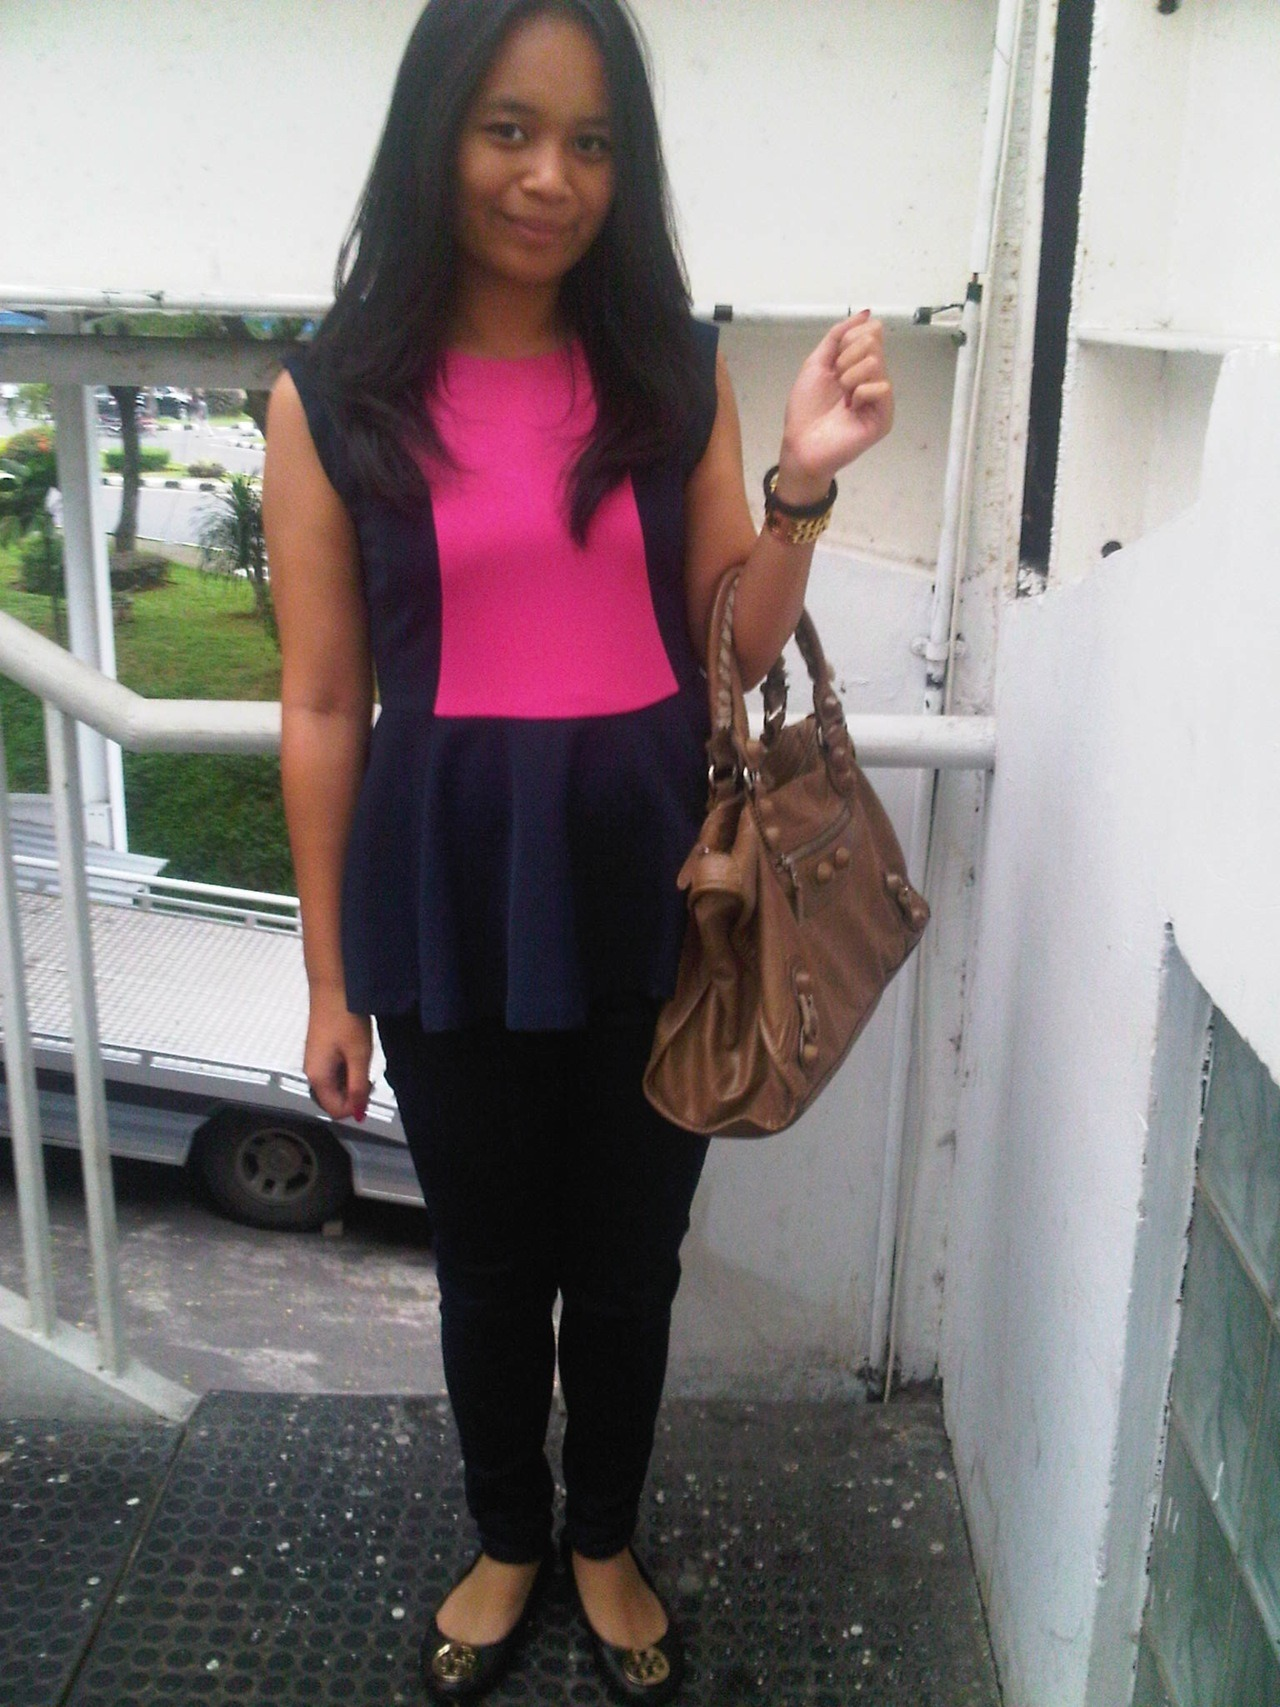 i was wearing : 1. Maje peplum top 2. Bleulab jeans 3. Balenciaga bag 4. Tory Burch flats